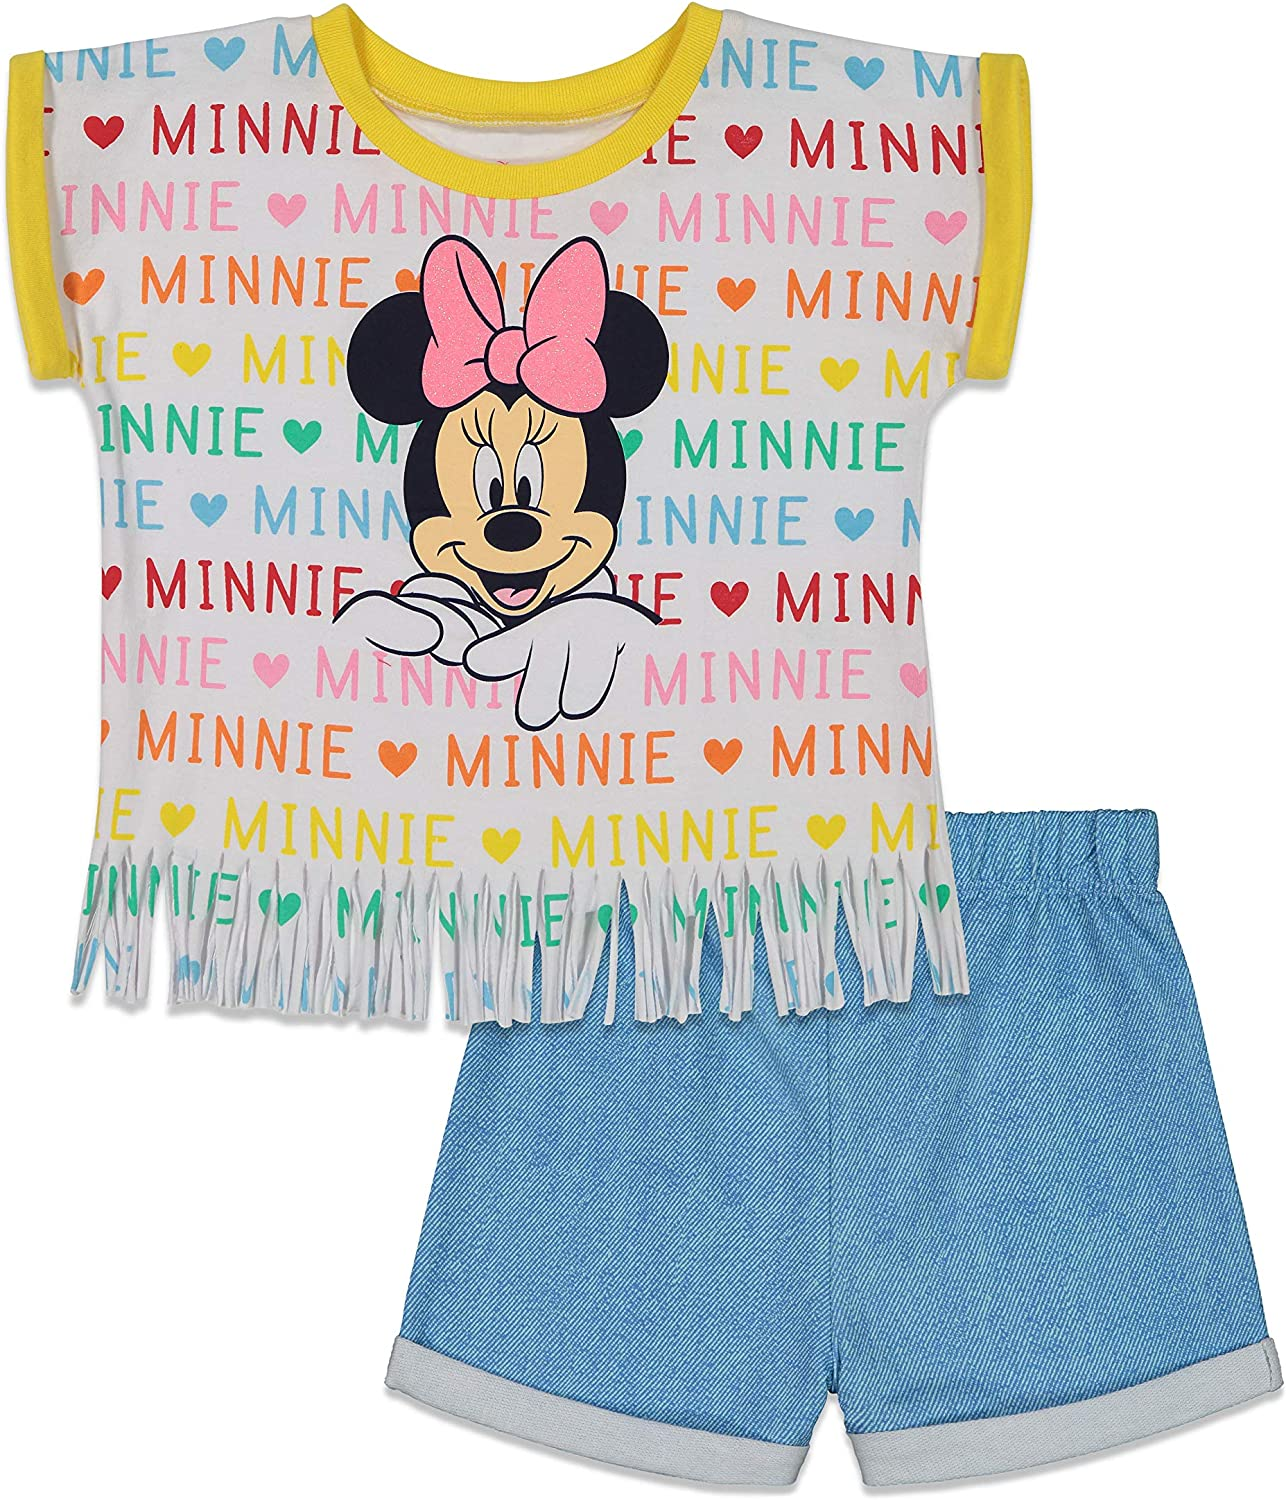 Disney Industry No. 1 Minnie Mouse Graphic T-Shirt Shorts Max 40% OFF Set